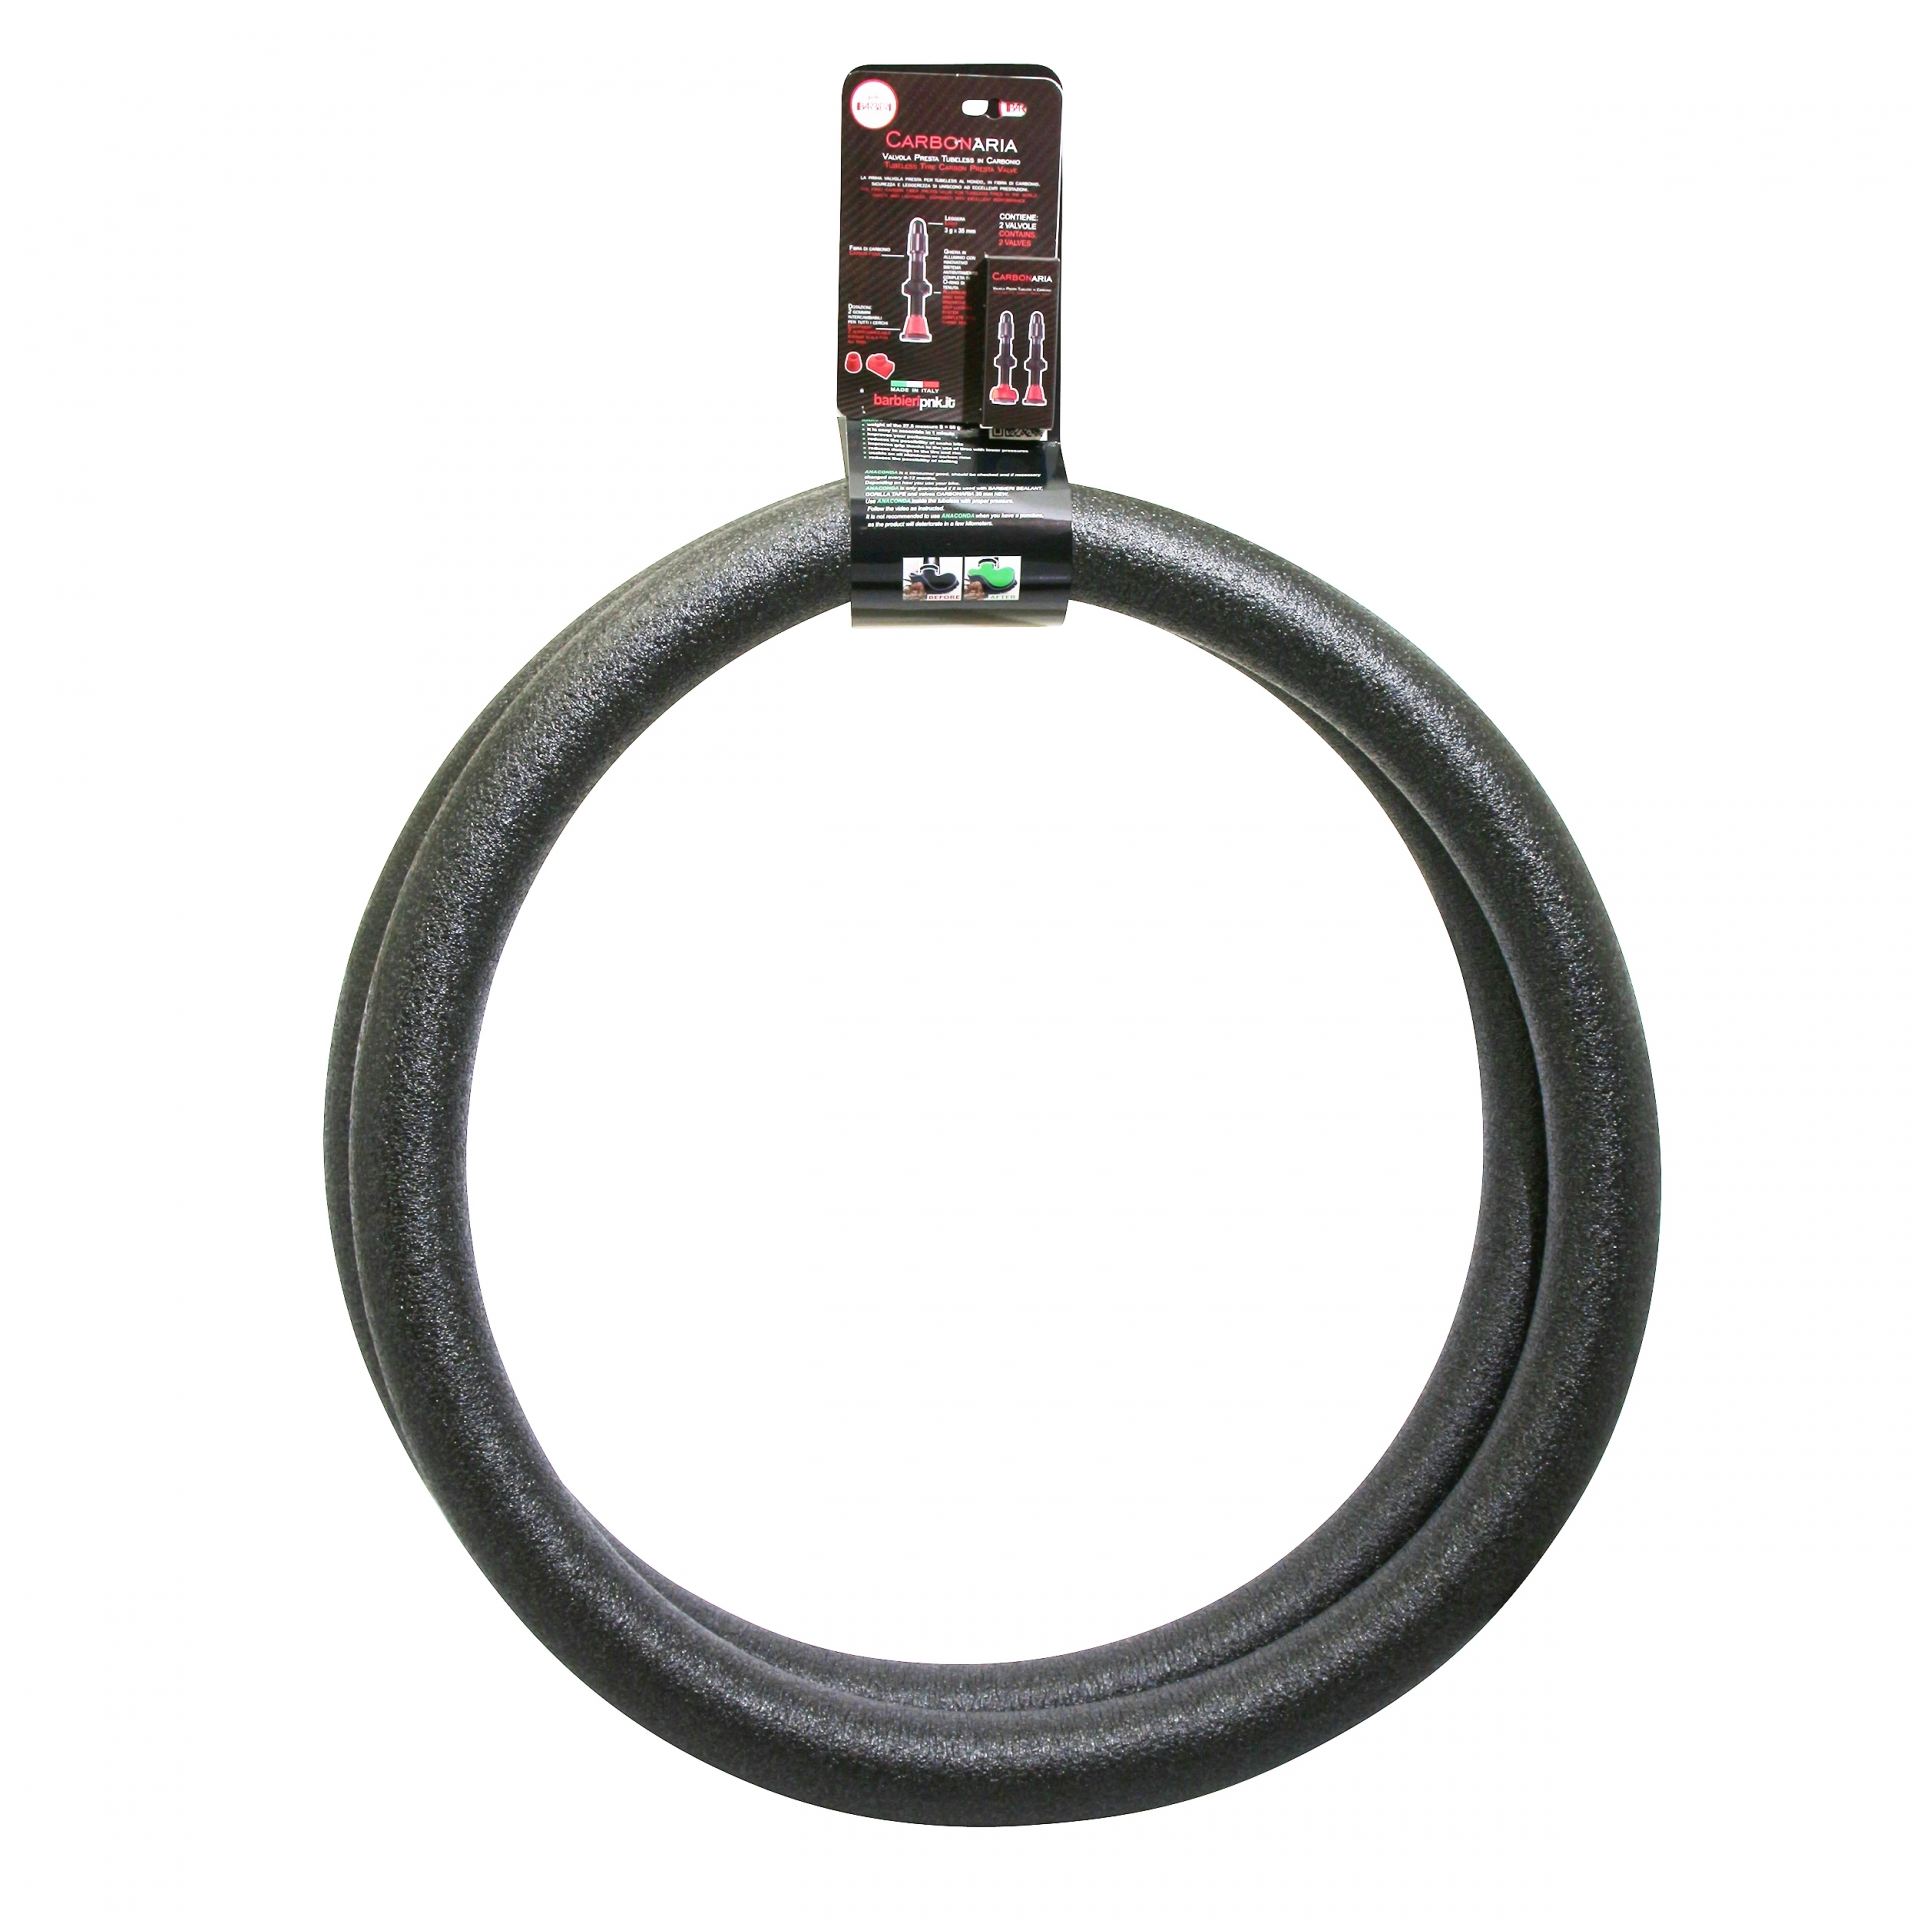 Mousse anti-pincement pneu VTT tubeless Roto Anaconda 27.5 x 2.80-3.00 (Paire)